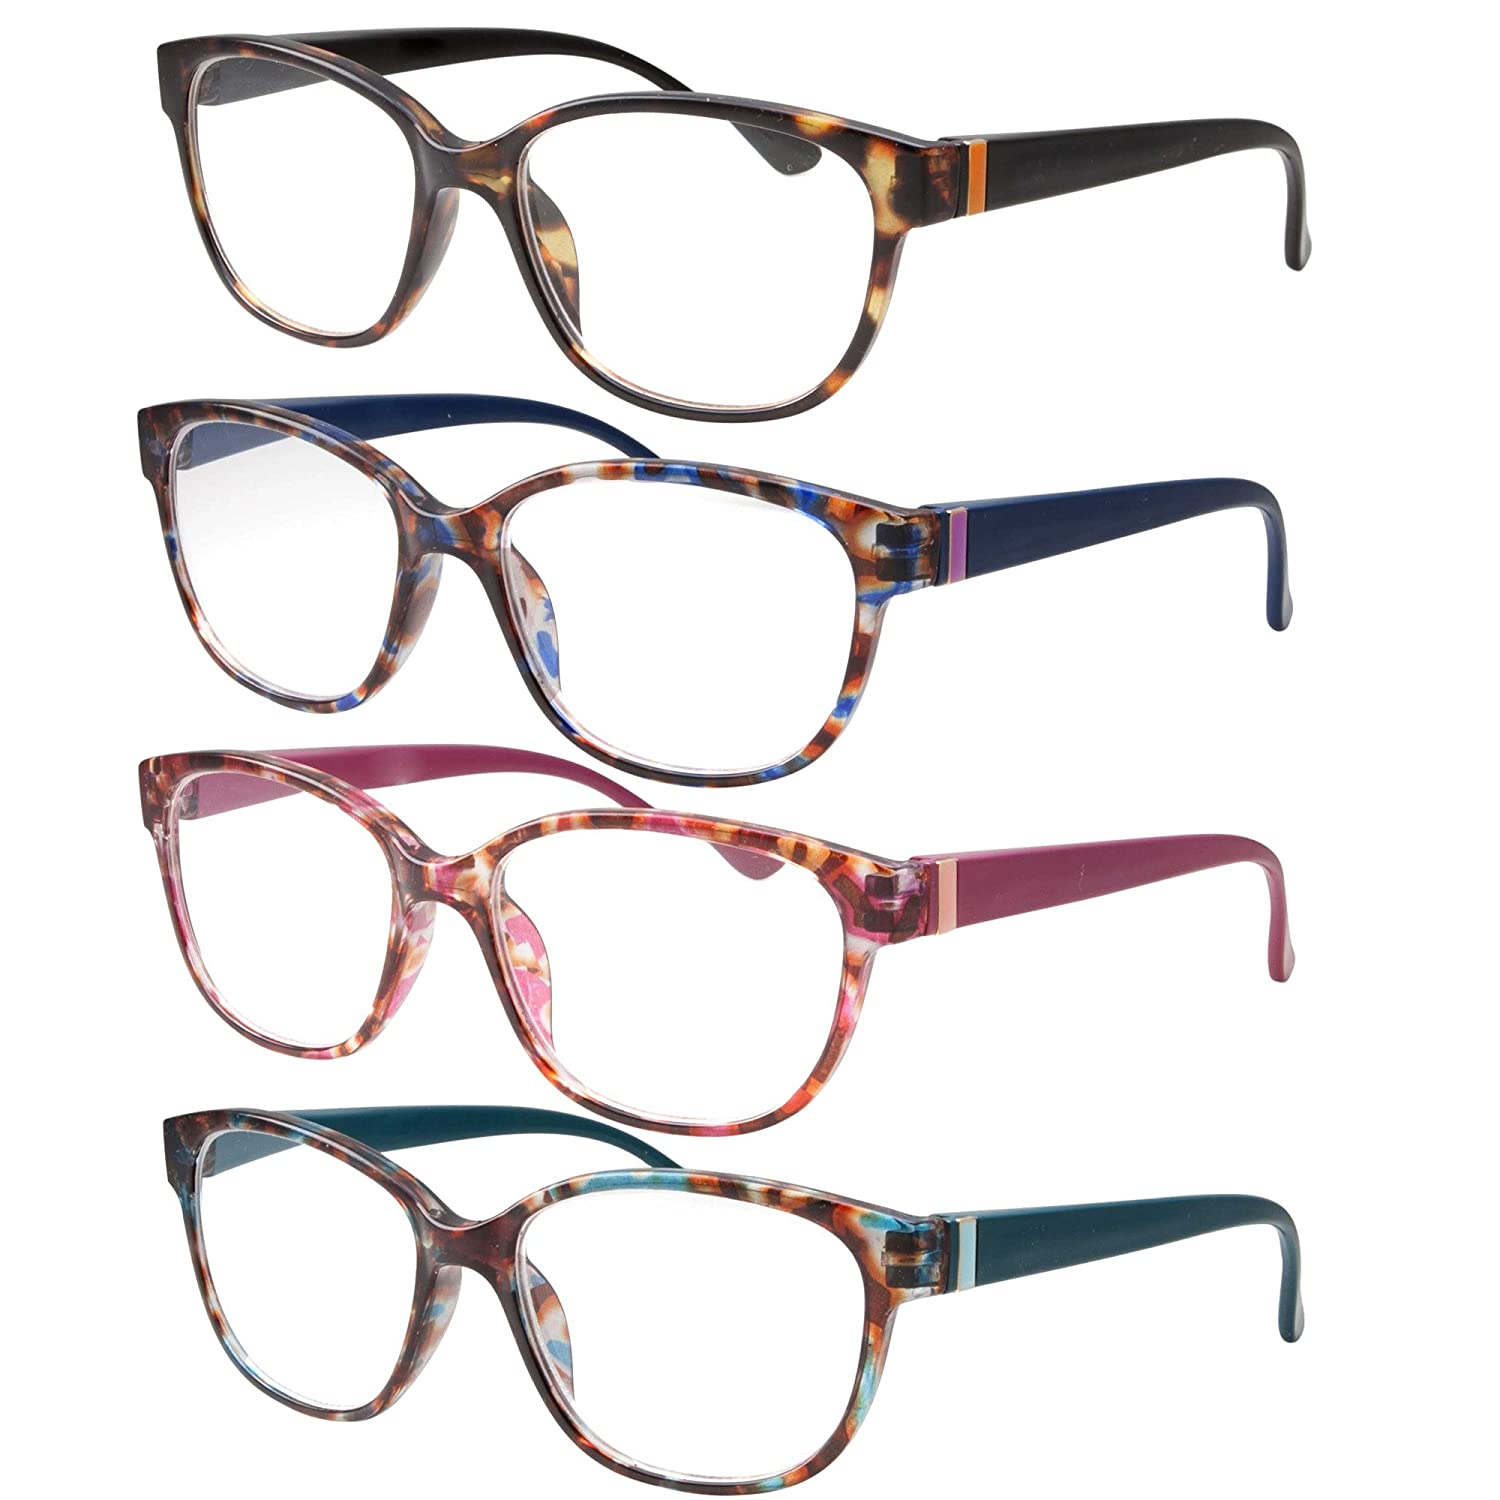 46ebe53221d2 Amazon.com  4 Pairs High Magnification Power Womens Reading Glasses - Cat  Eye Readers +4.00  Clothing